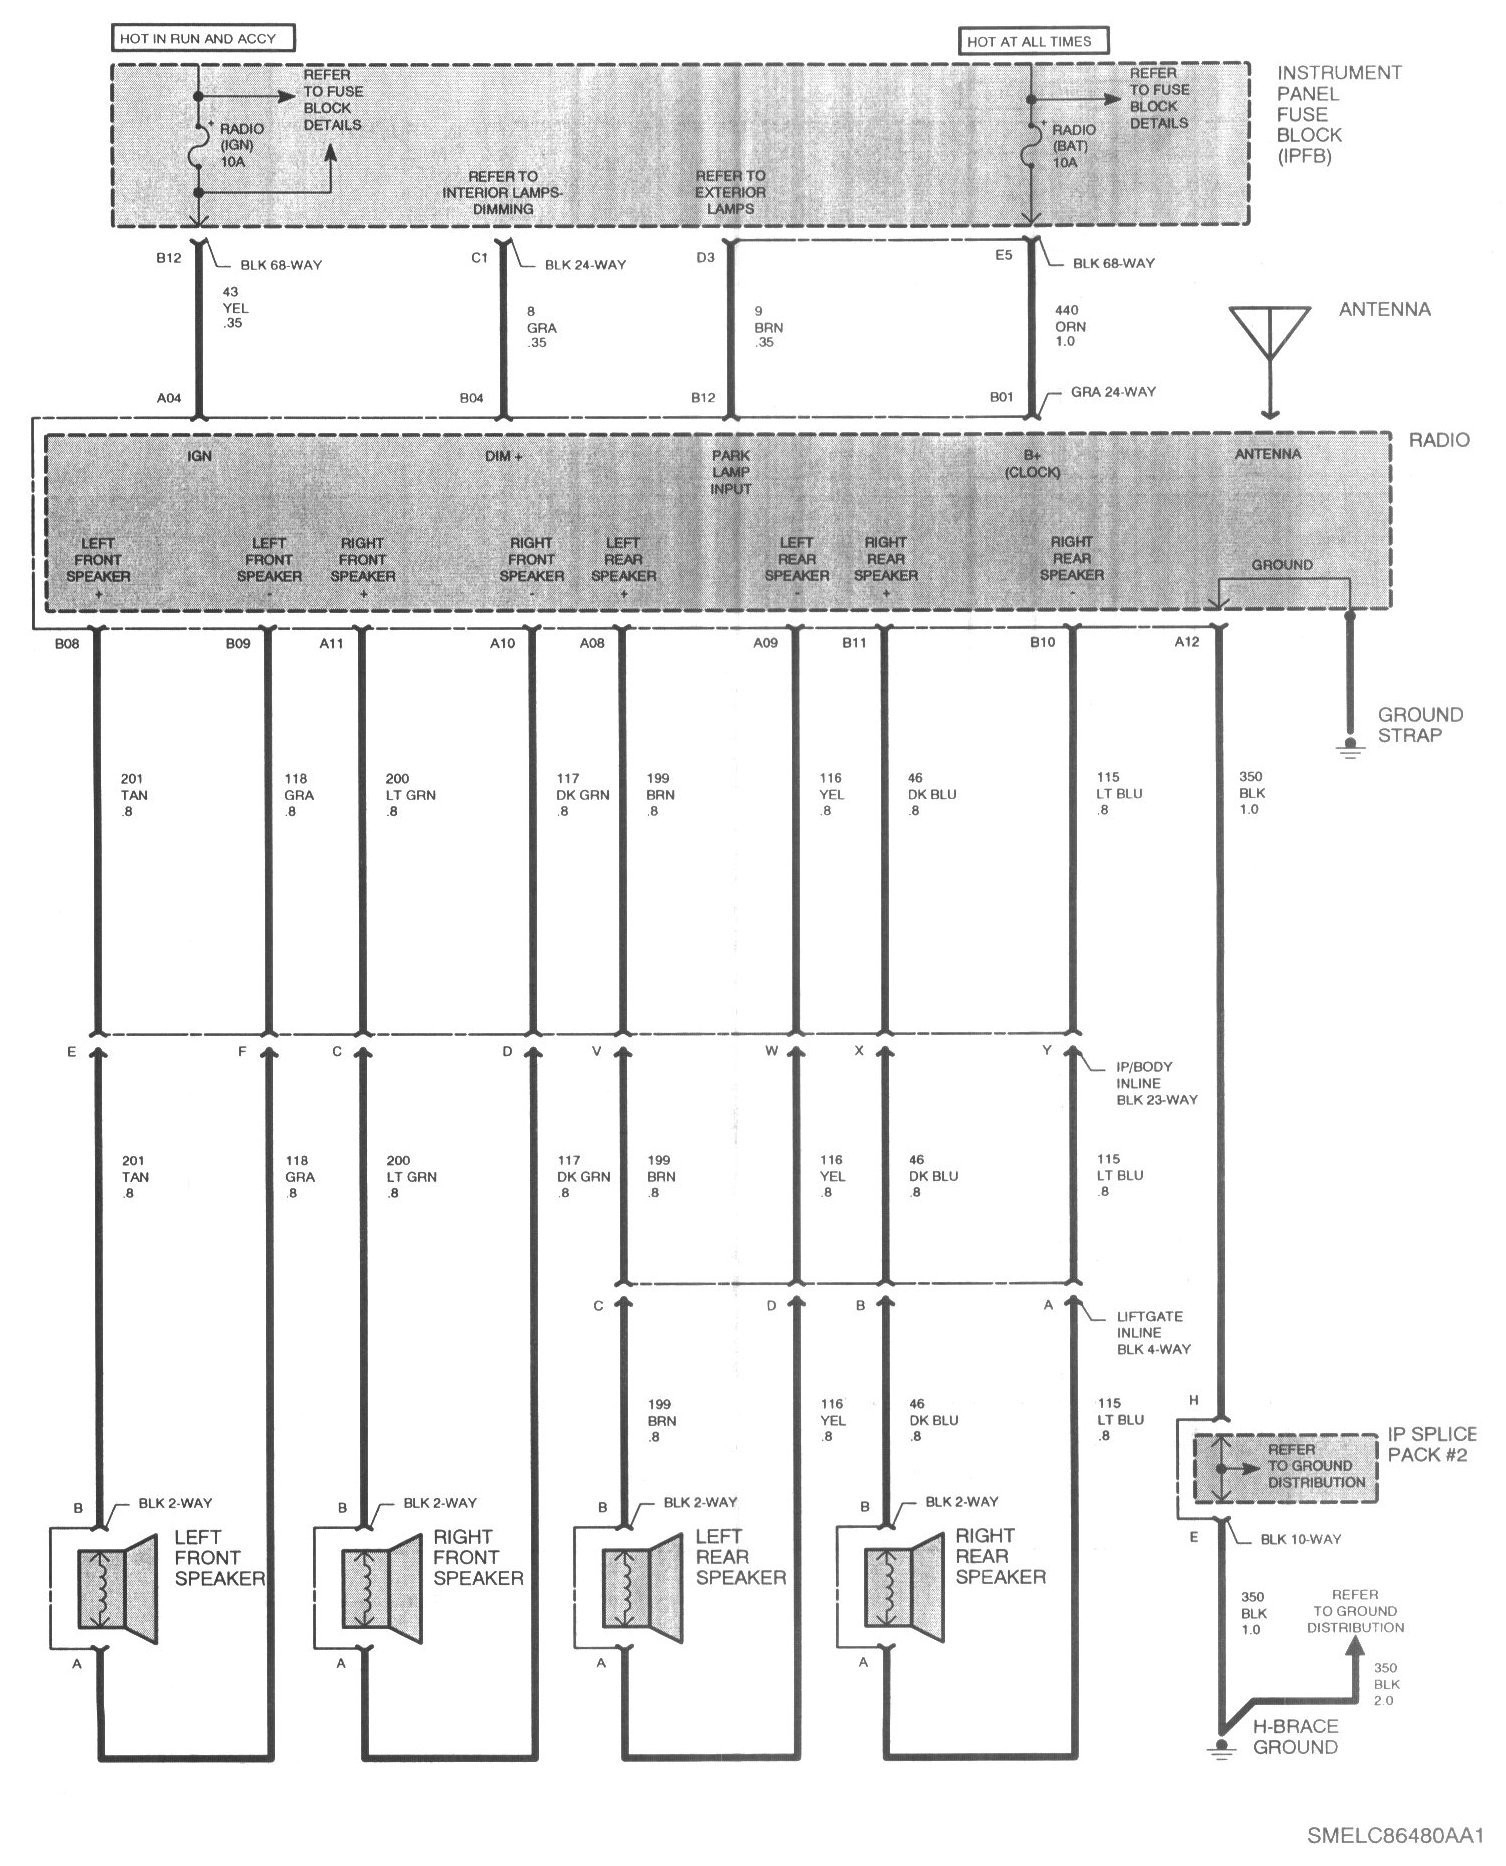 Radio Wiring Diagram For Trailblazer on gm delco, ford explorer, bmw e36, delco car, ford mustang, pontiac grand prix, delco electronics, ford expedition, toyota tundra, ford f250,